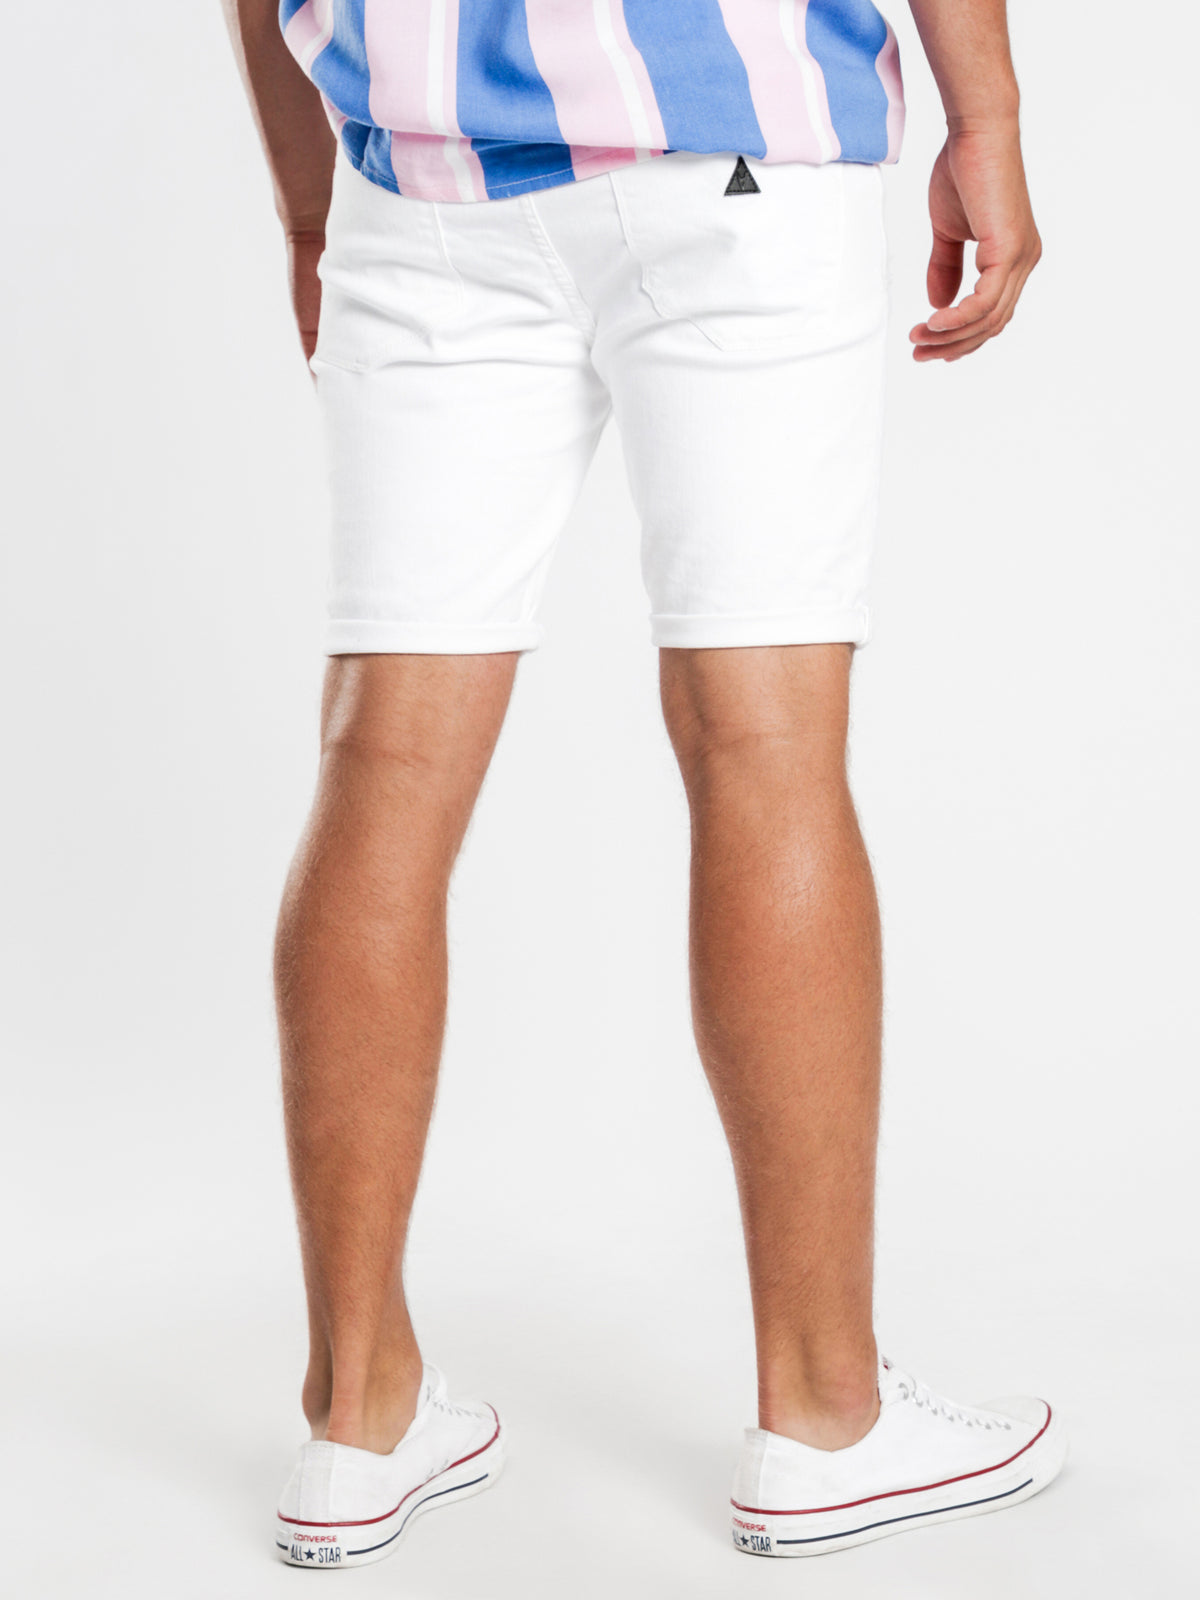 A Dropped Skinny Shorts in Rouge White Denim